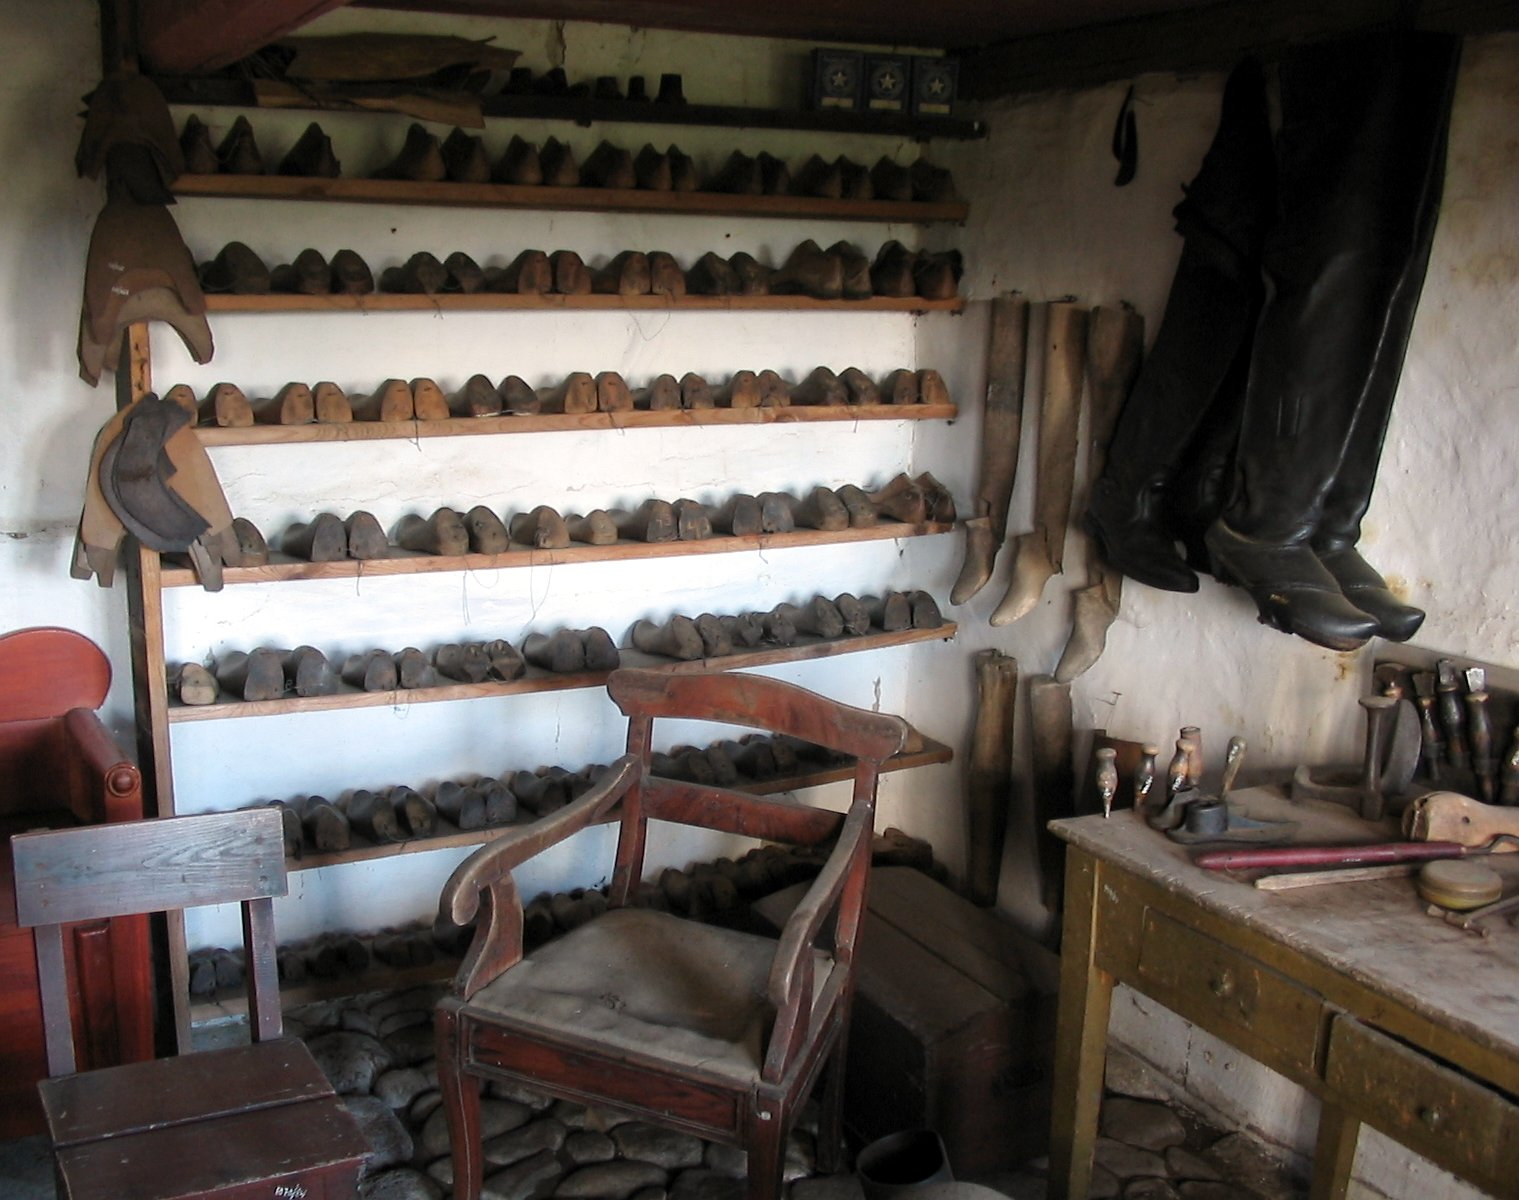 A shoemaker's workshop